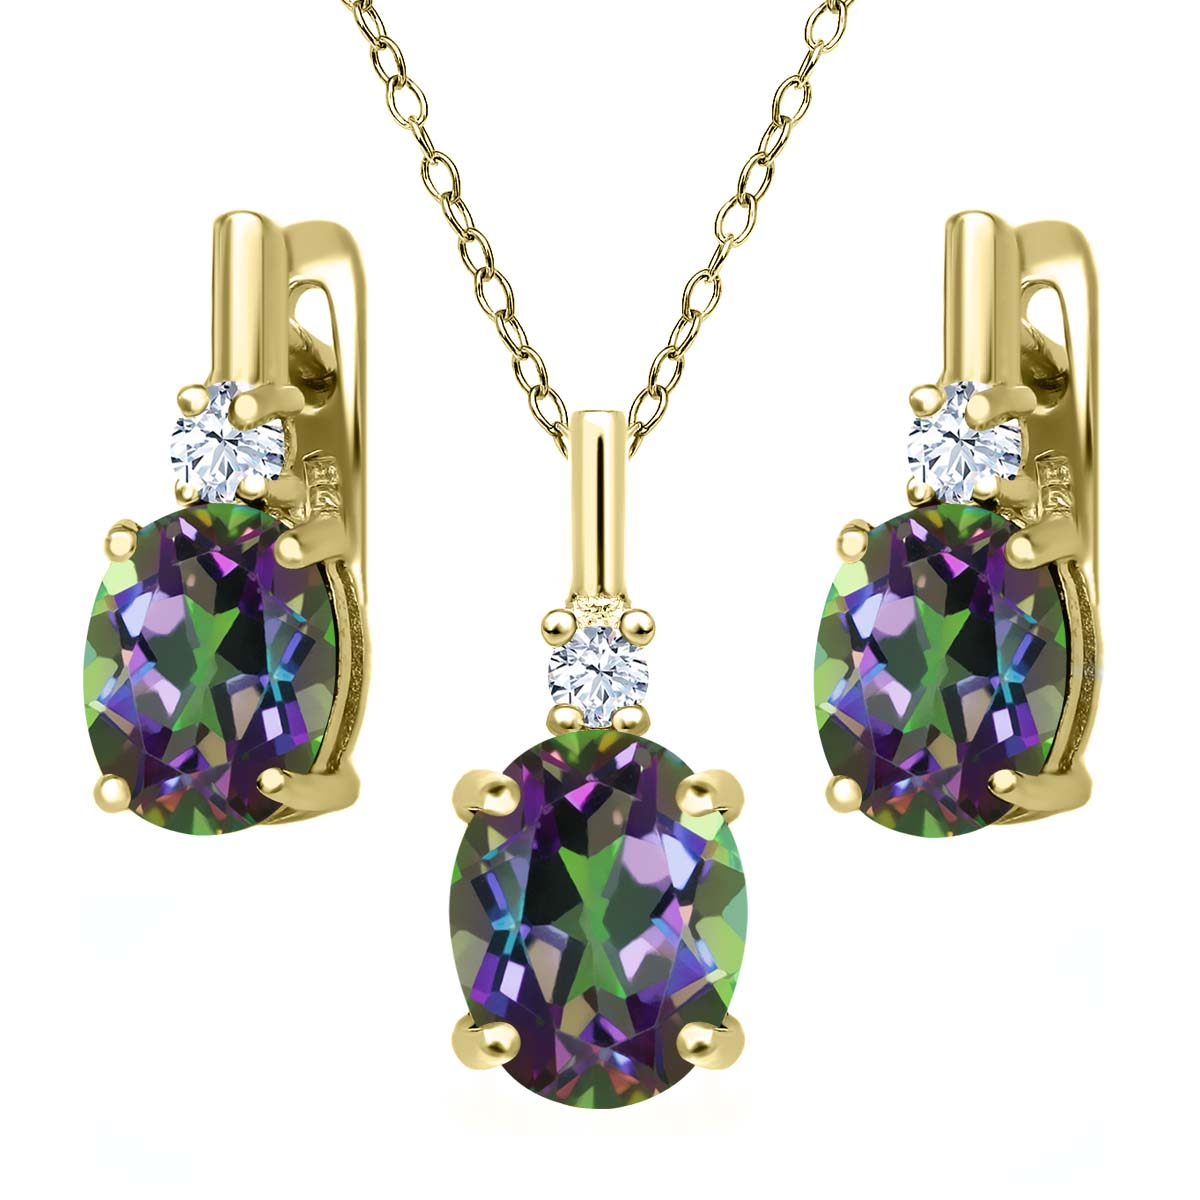 6.95 Ct Green Mystic Topaz 18K Yellow Gold Plated Silver Pendant Earrings Set by